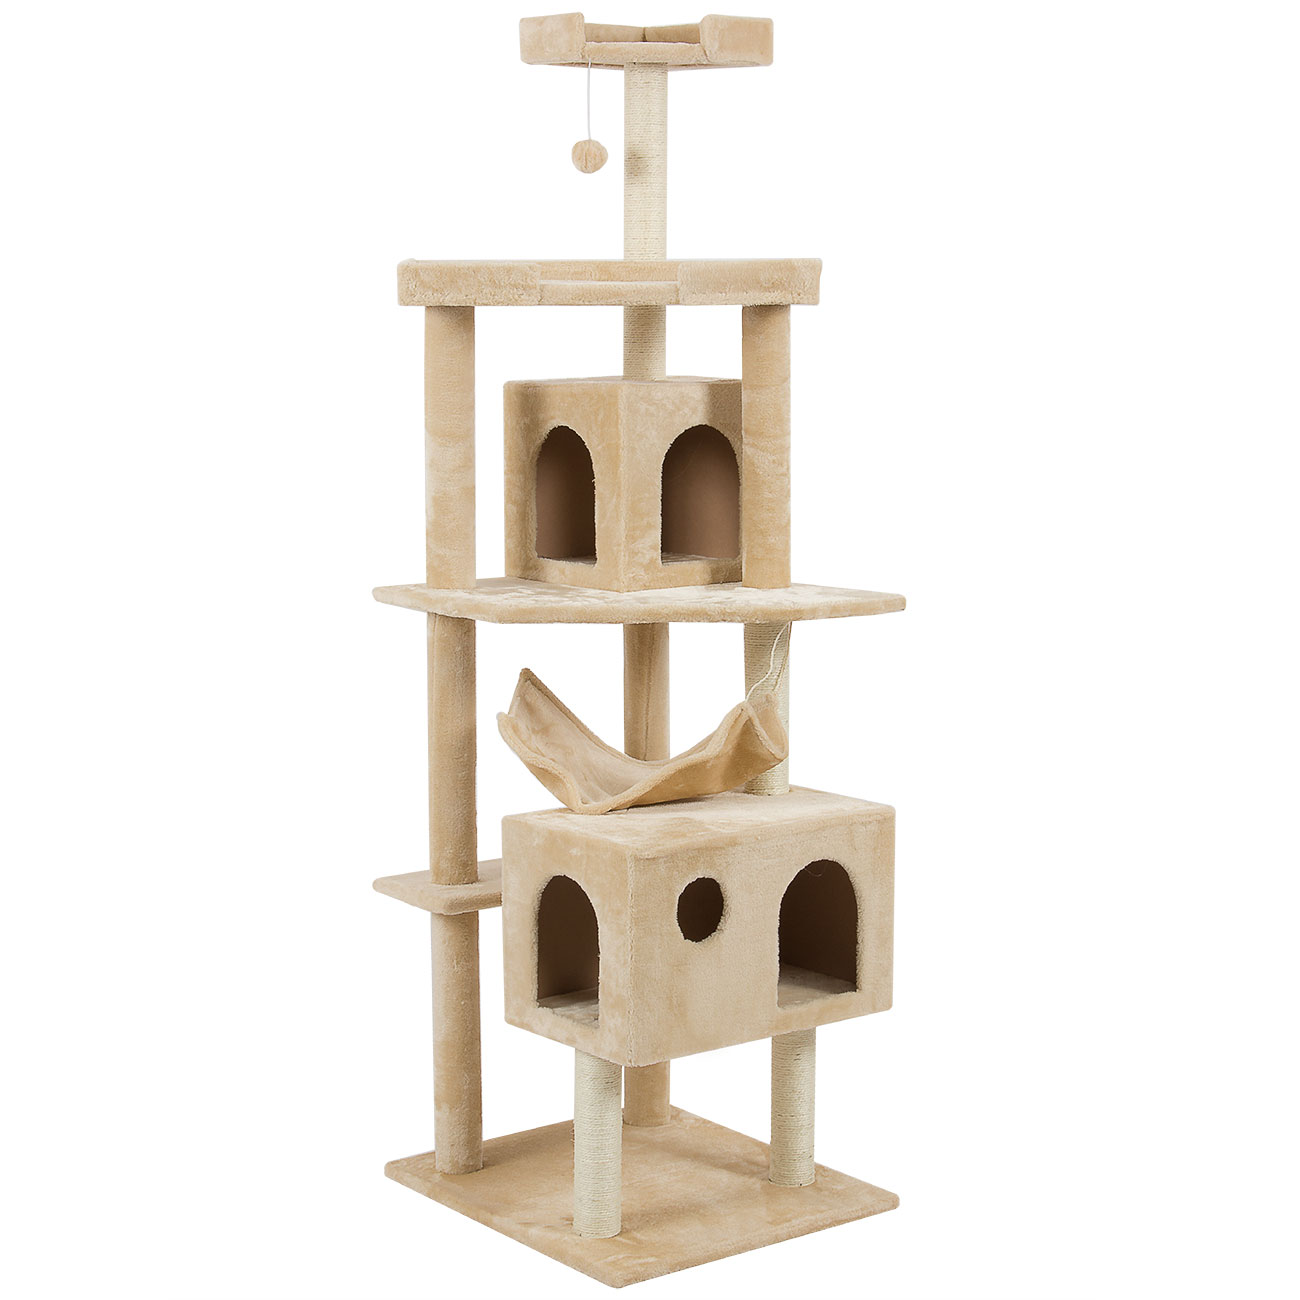 New 71 cat tree tower condo furniture scratch post house for Cat tower with hammock